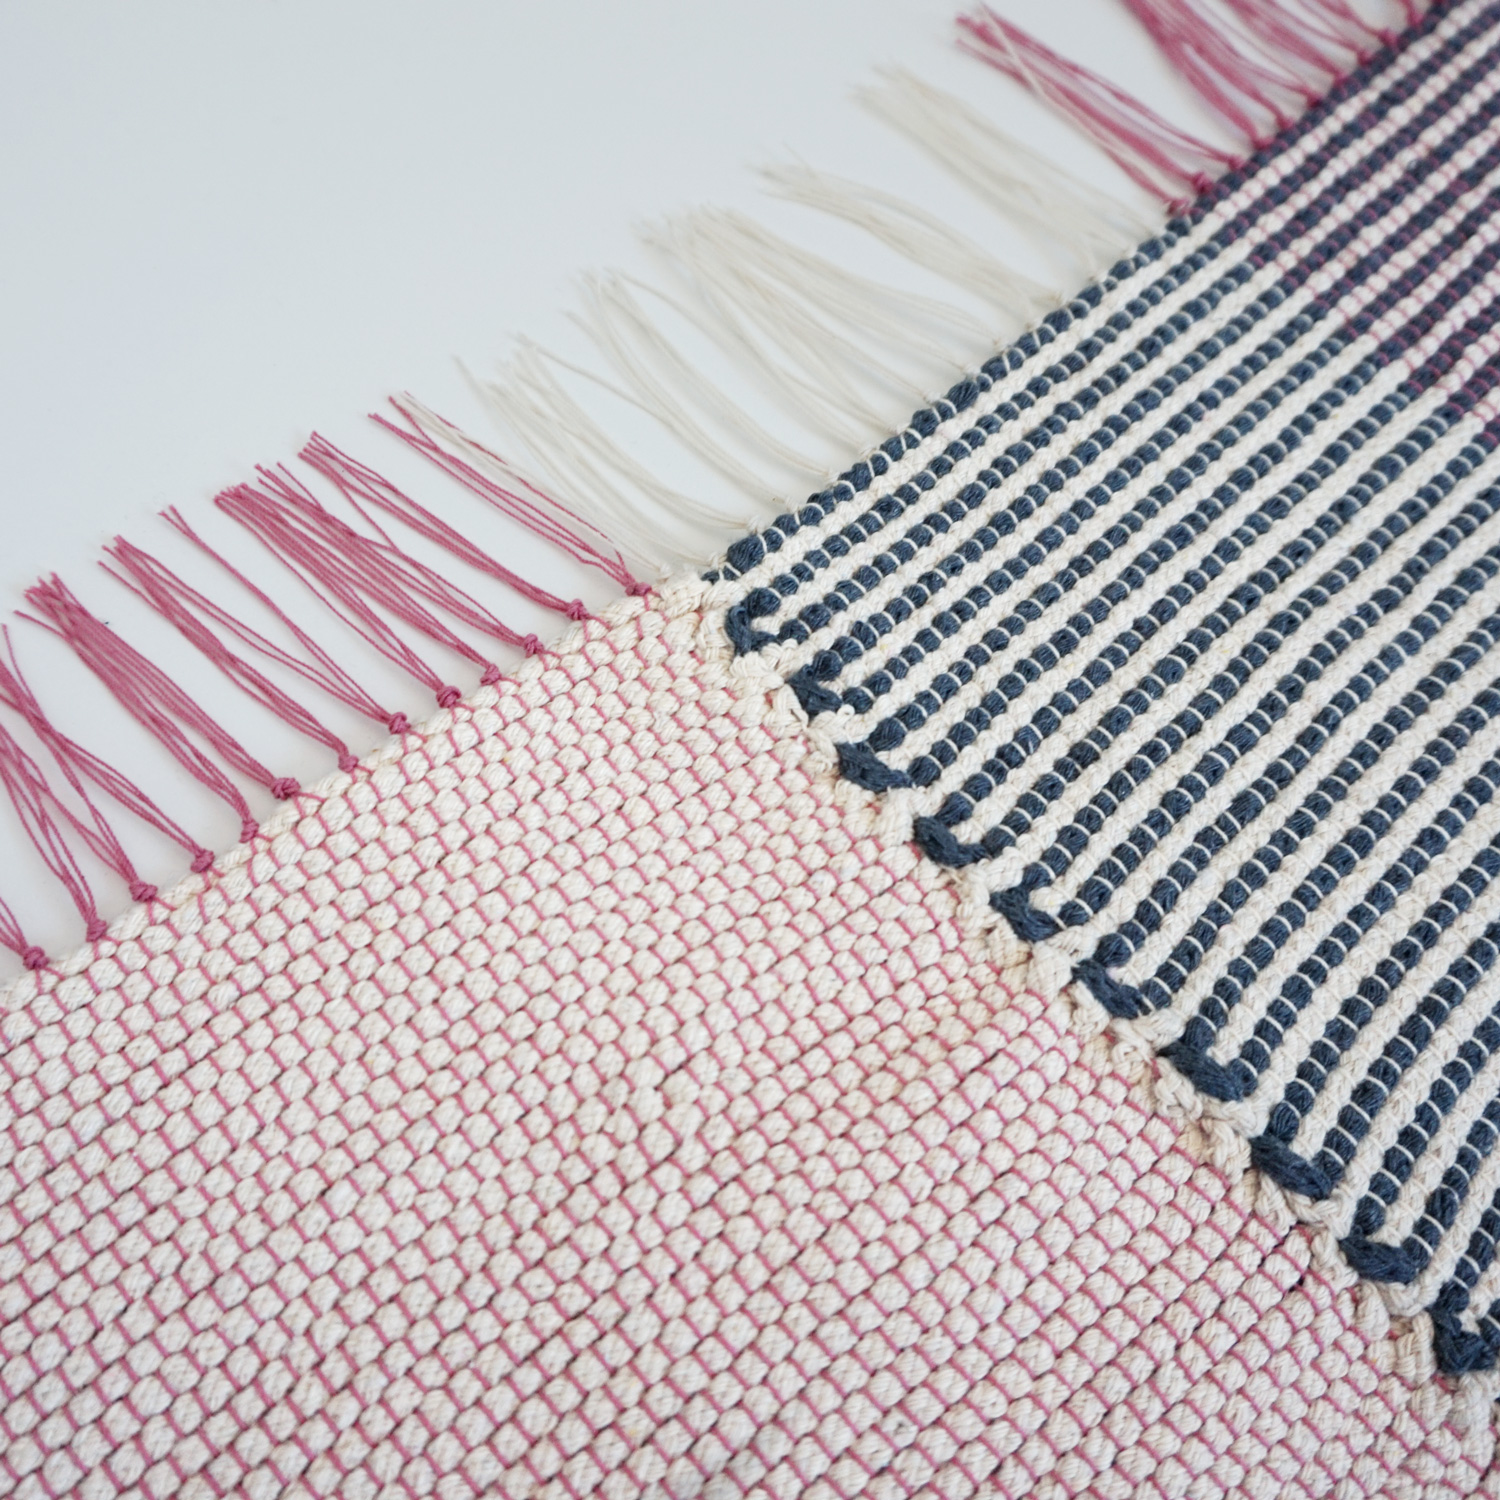 An extra large geometric carpet, woven from macrame rope and DIY crochet rope.